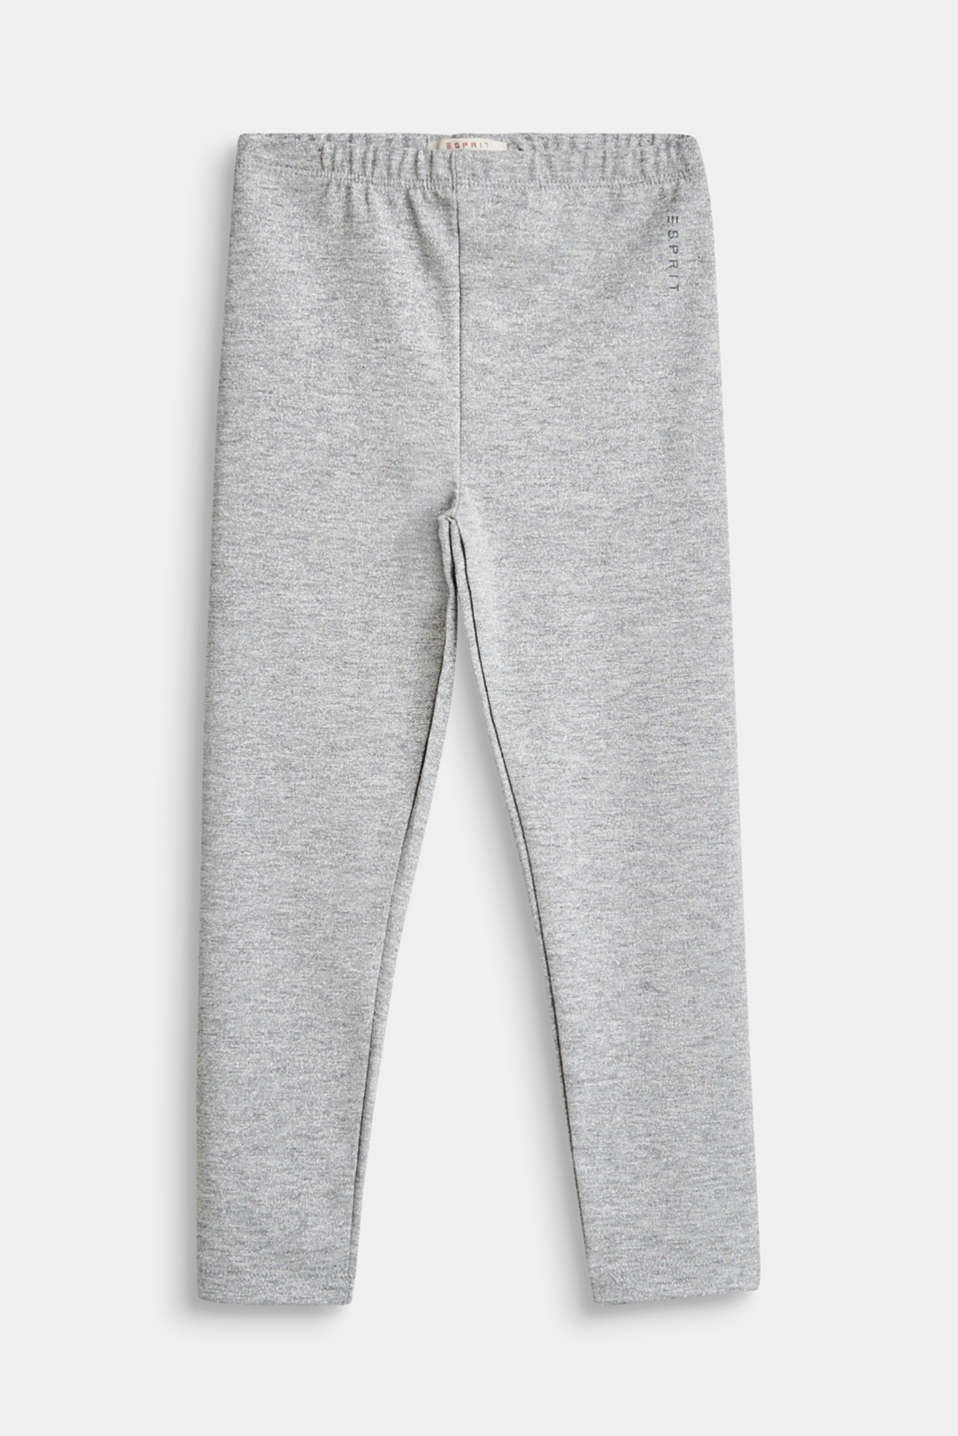 Esprit - Leggings with a silver glitter effect